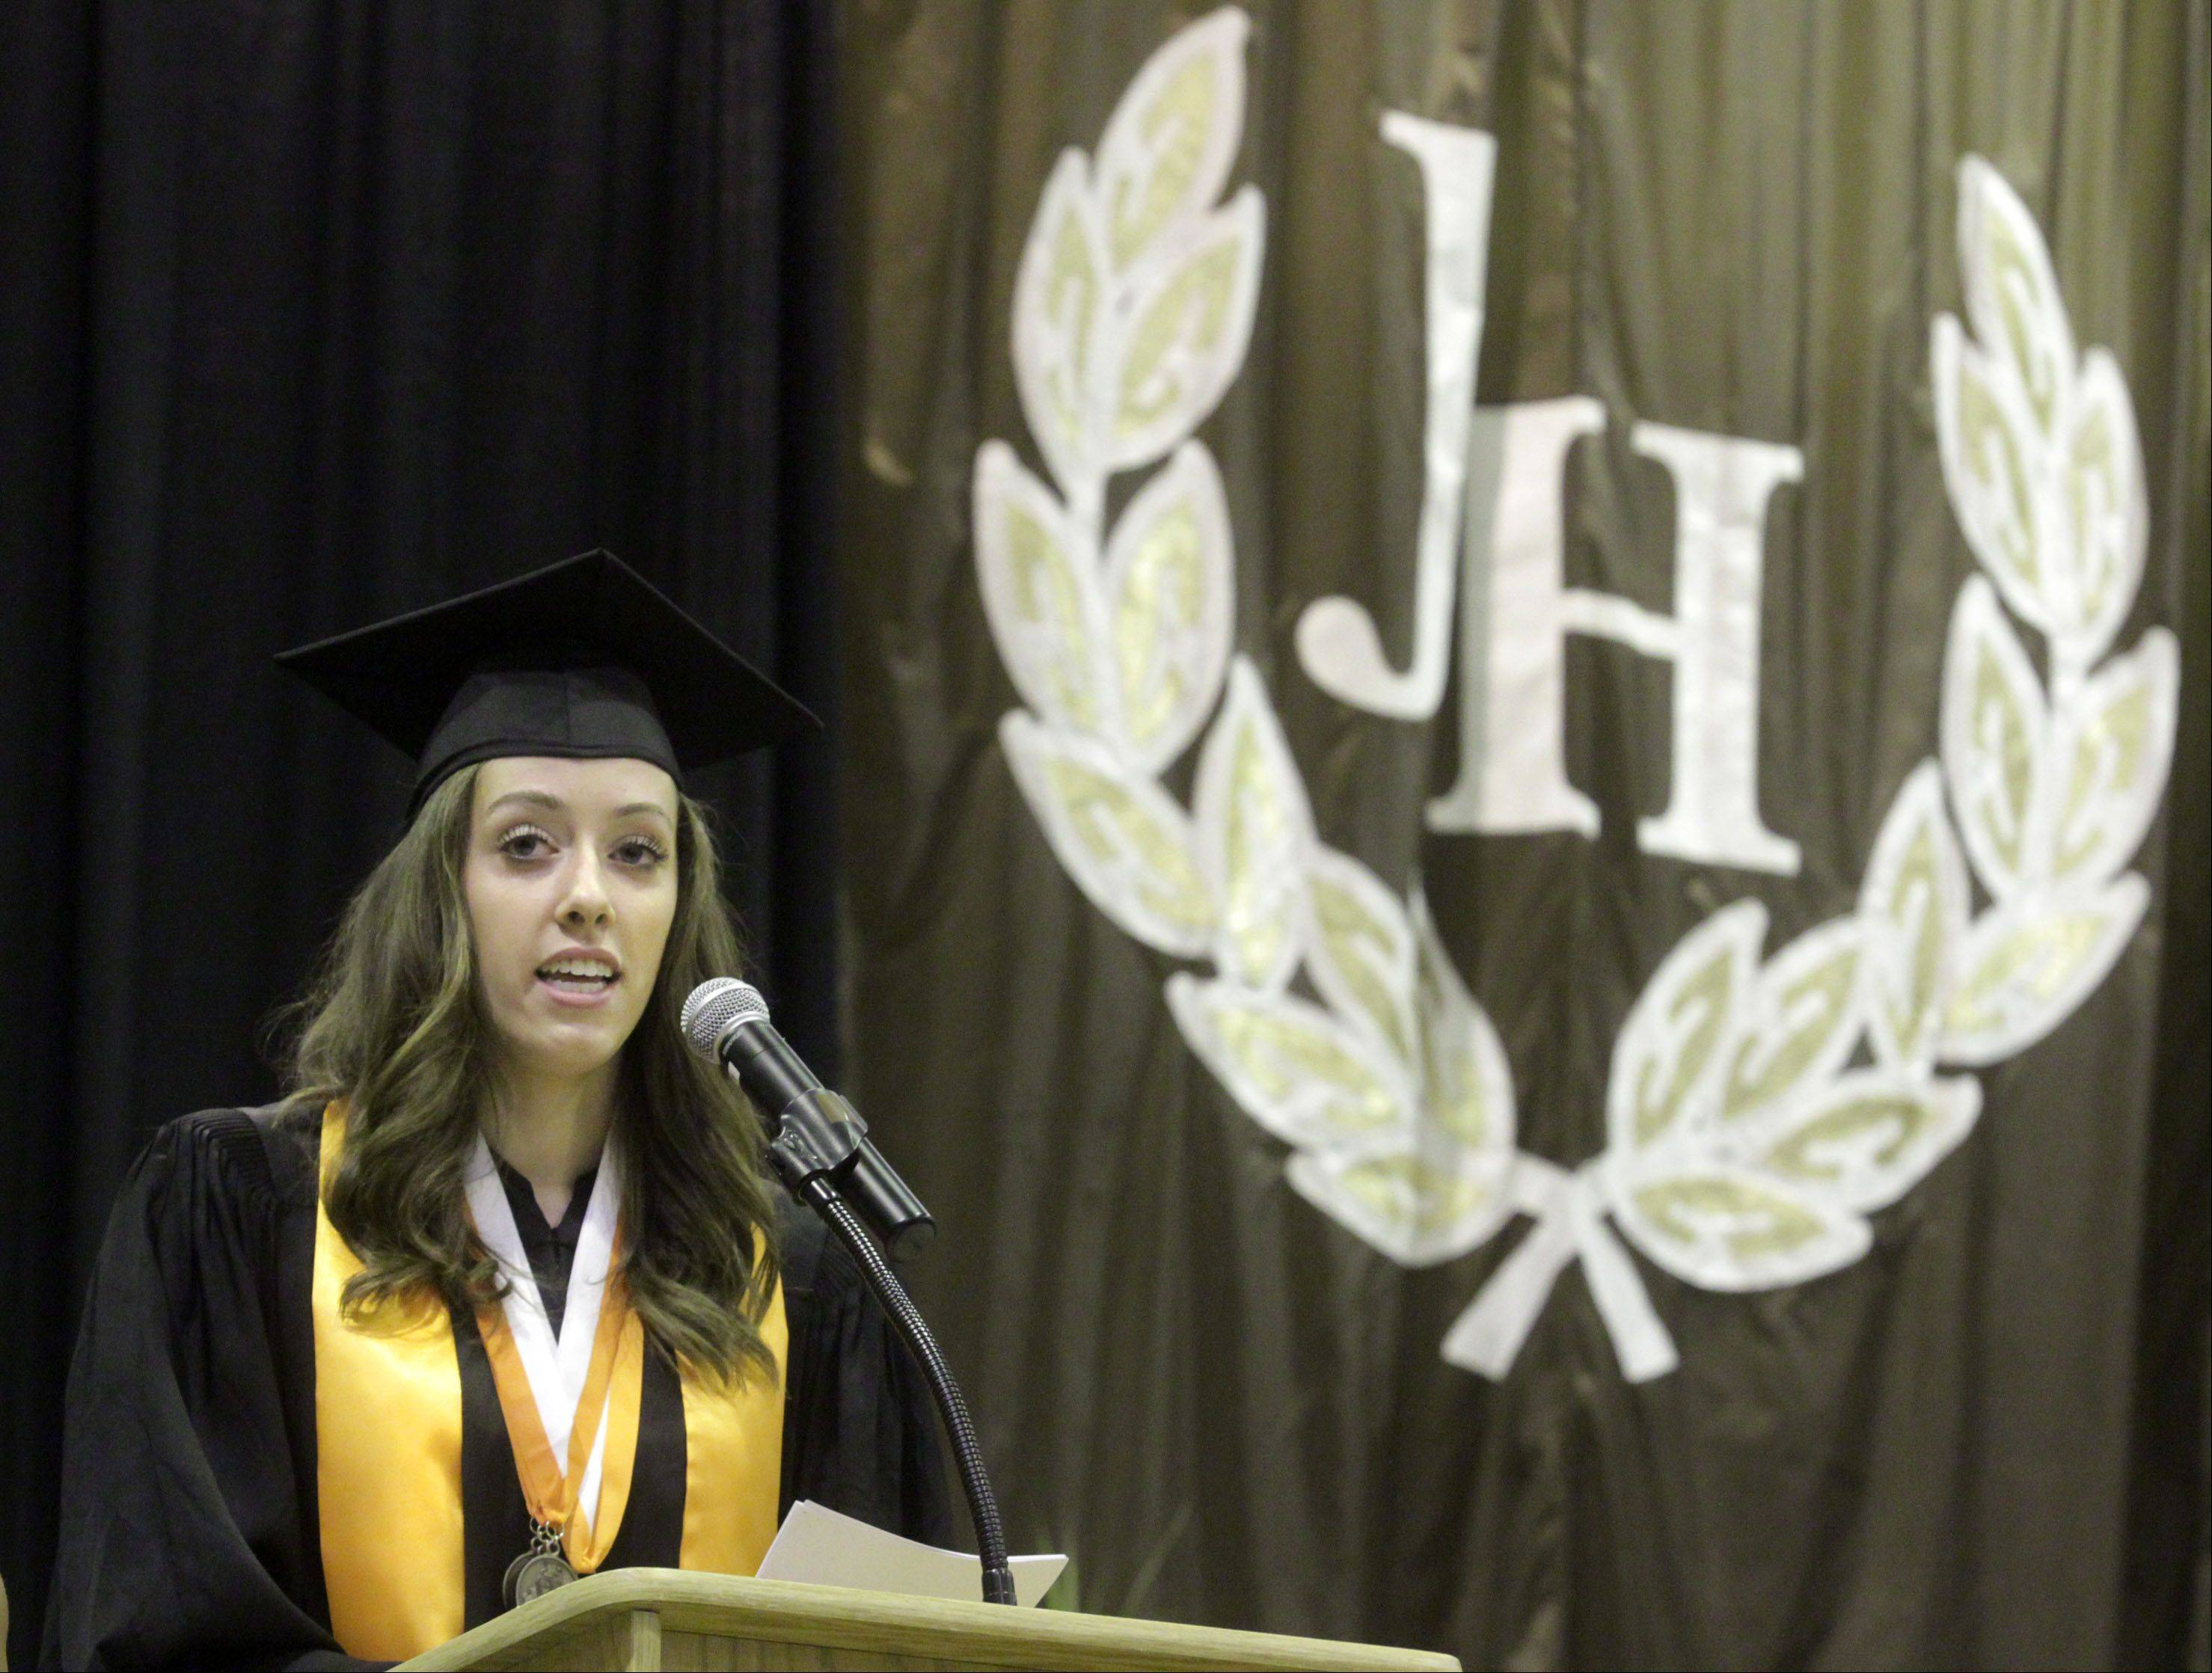 Student council President Lauren Nagle speaks during Hersey High School's commencement exercises in Arlington Heights on Sunday, June 2, 2013.